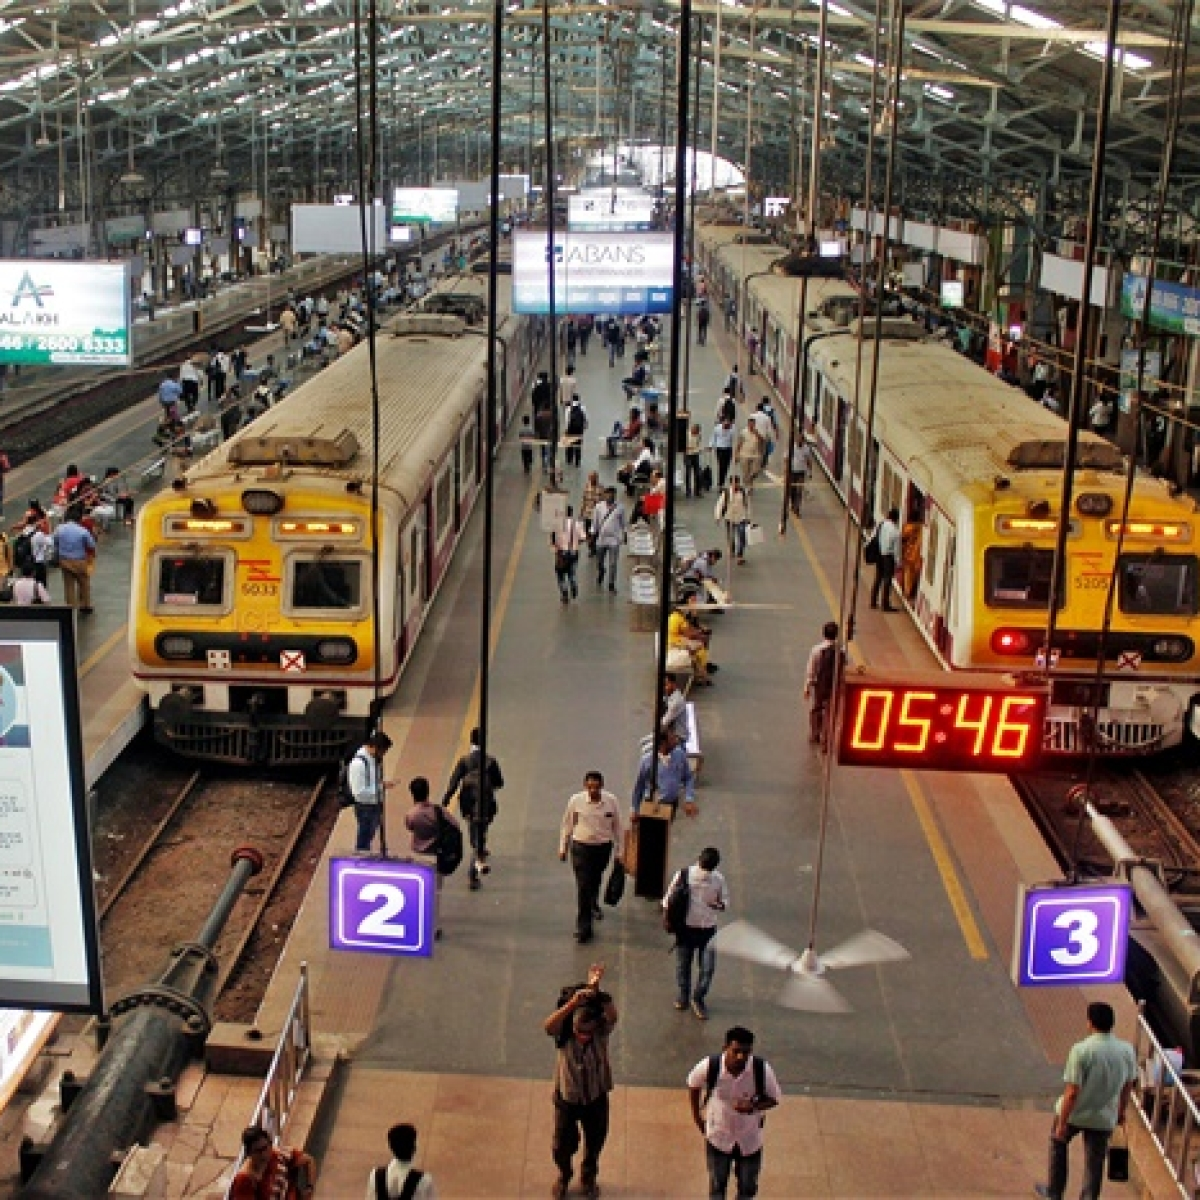 Mumbai: Six-hour block on Western Railway line, trains to be partially cancelled - Check details here